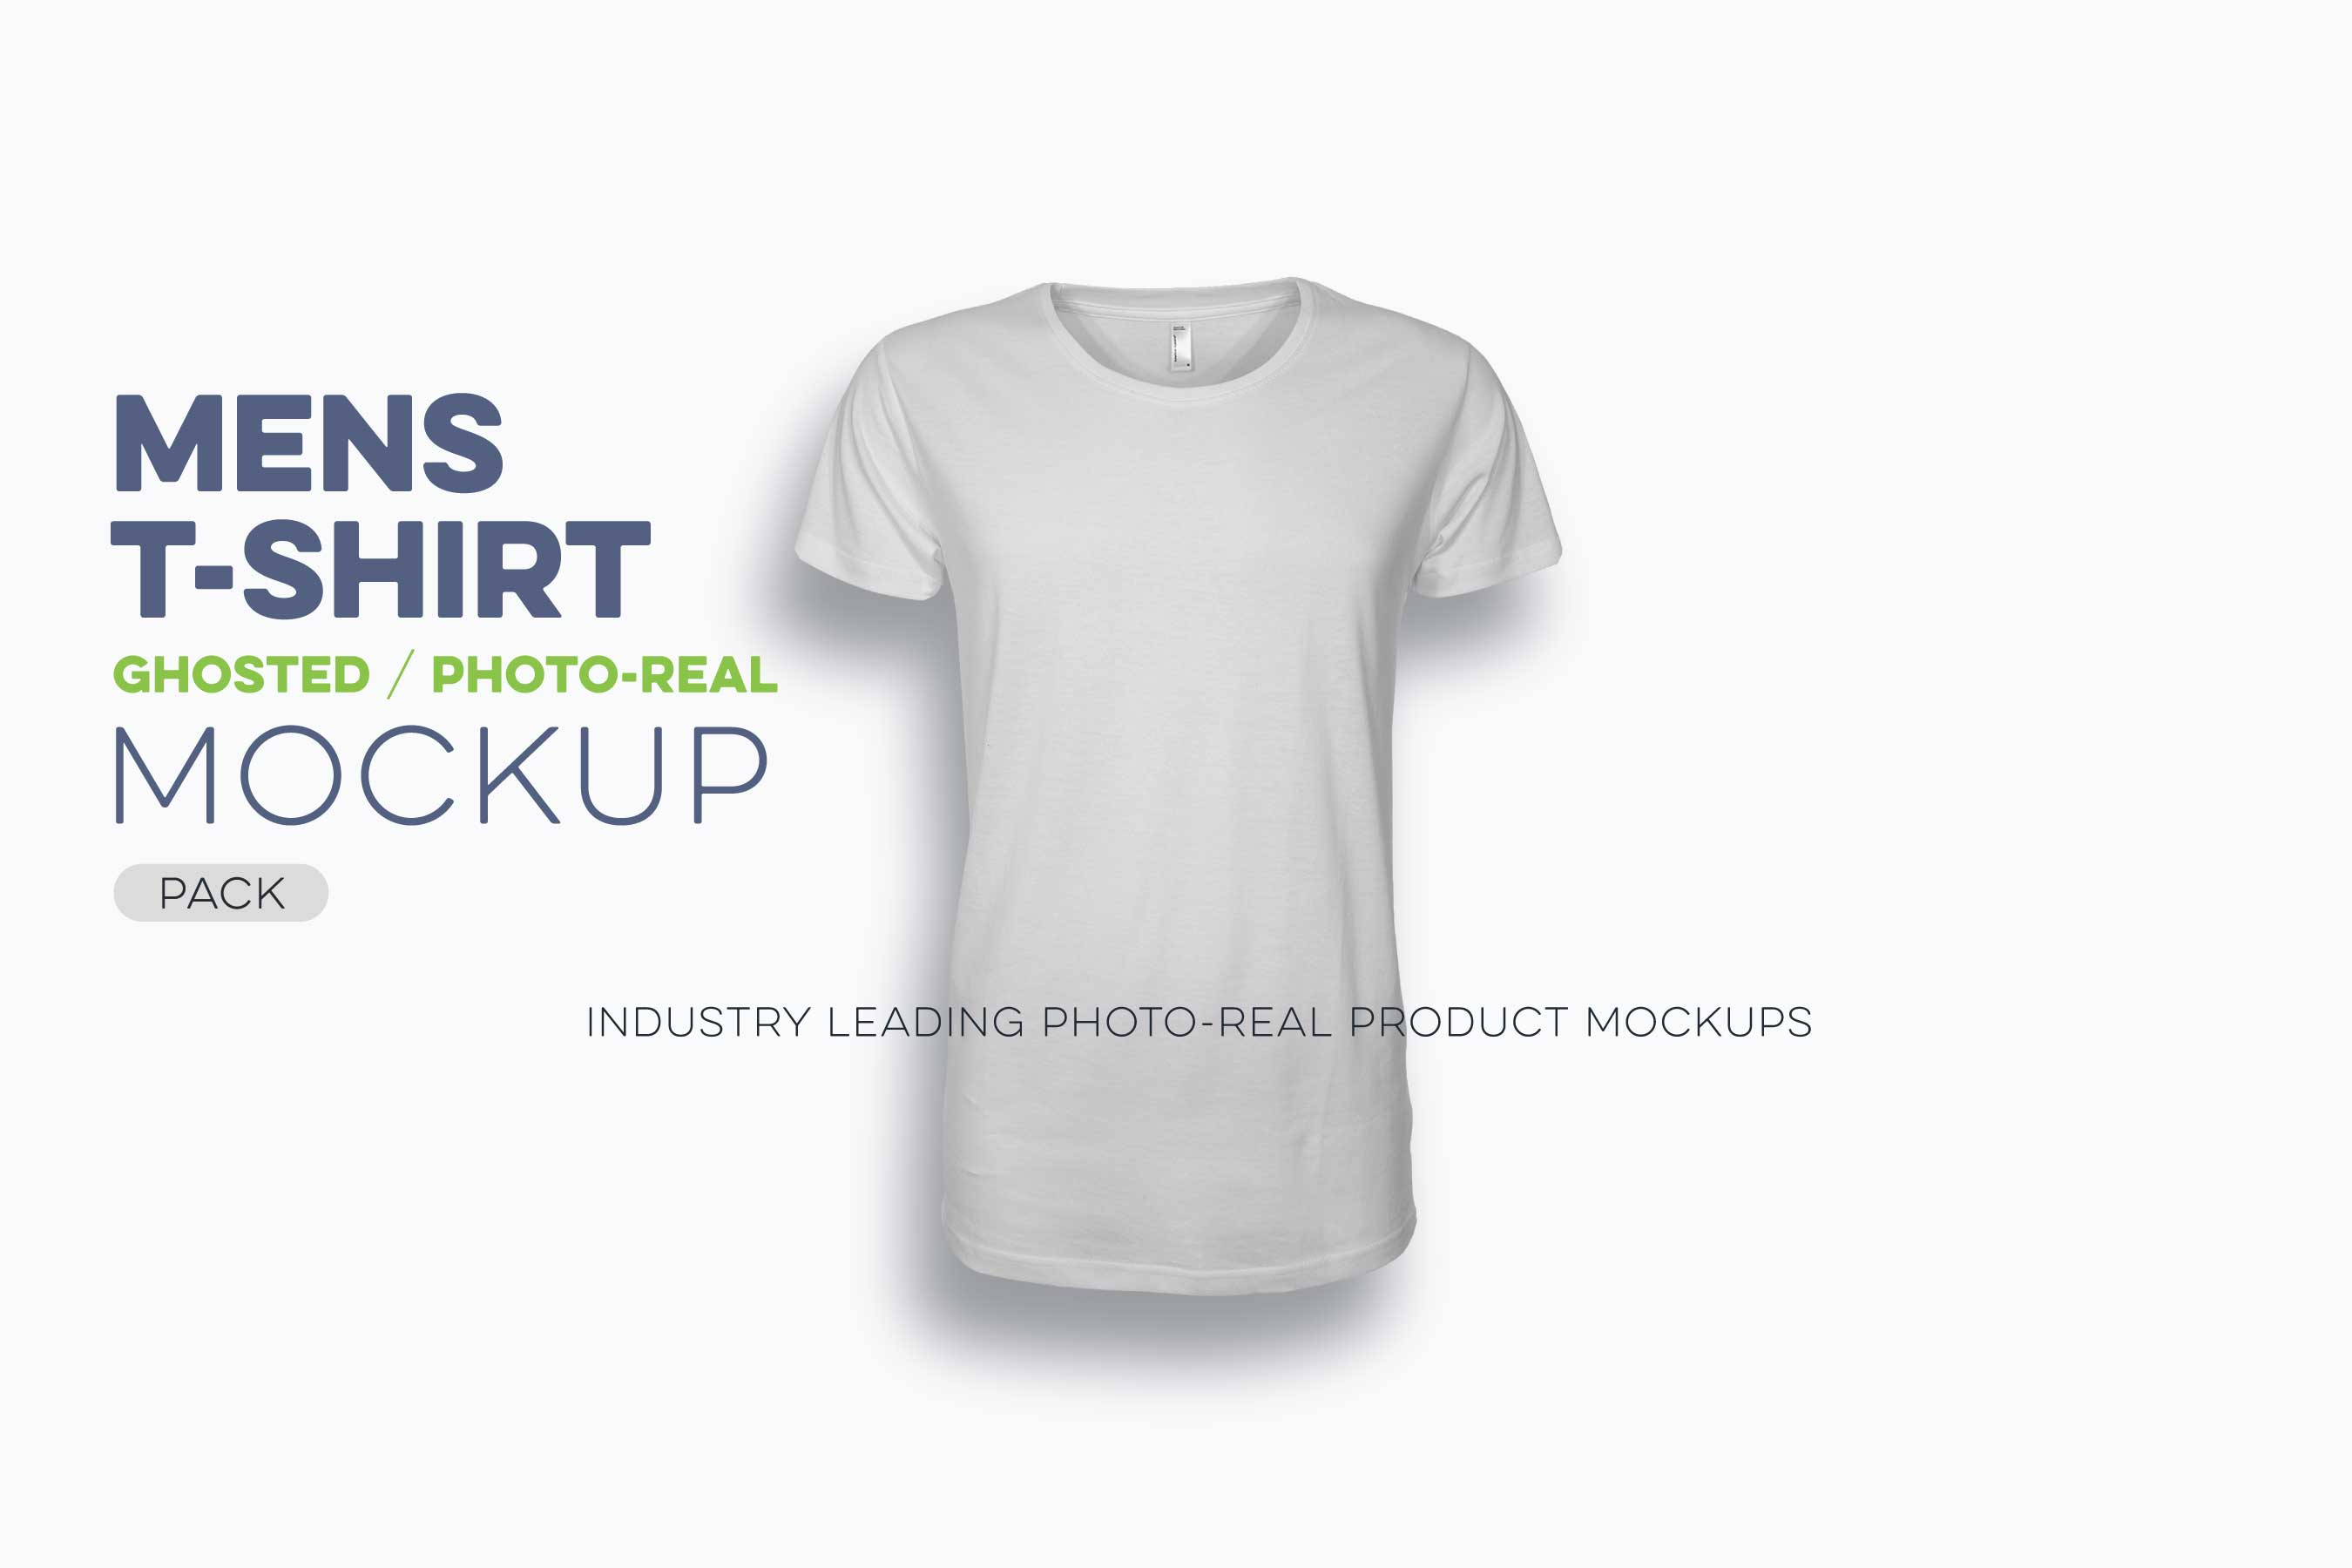 Mens Ghosted TShirt Mockup Template Threadosauruscom - T shirt mockup template